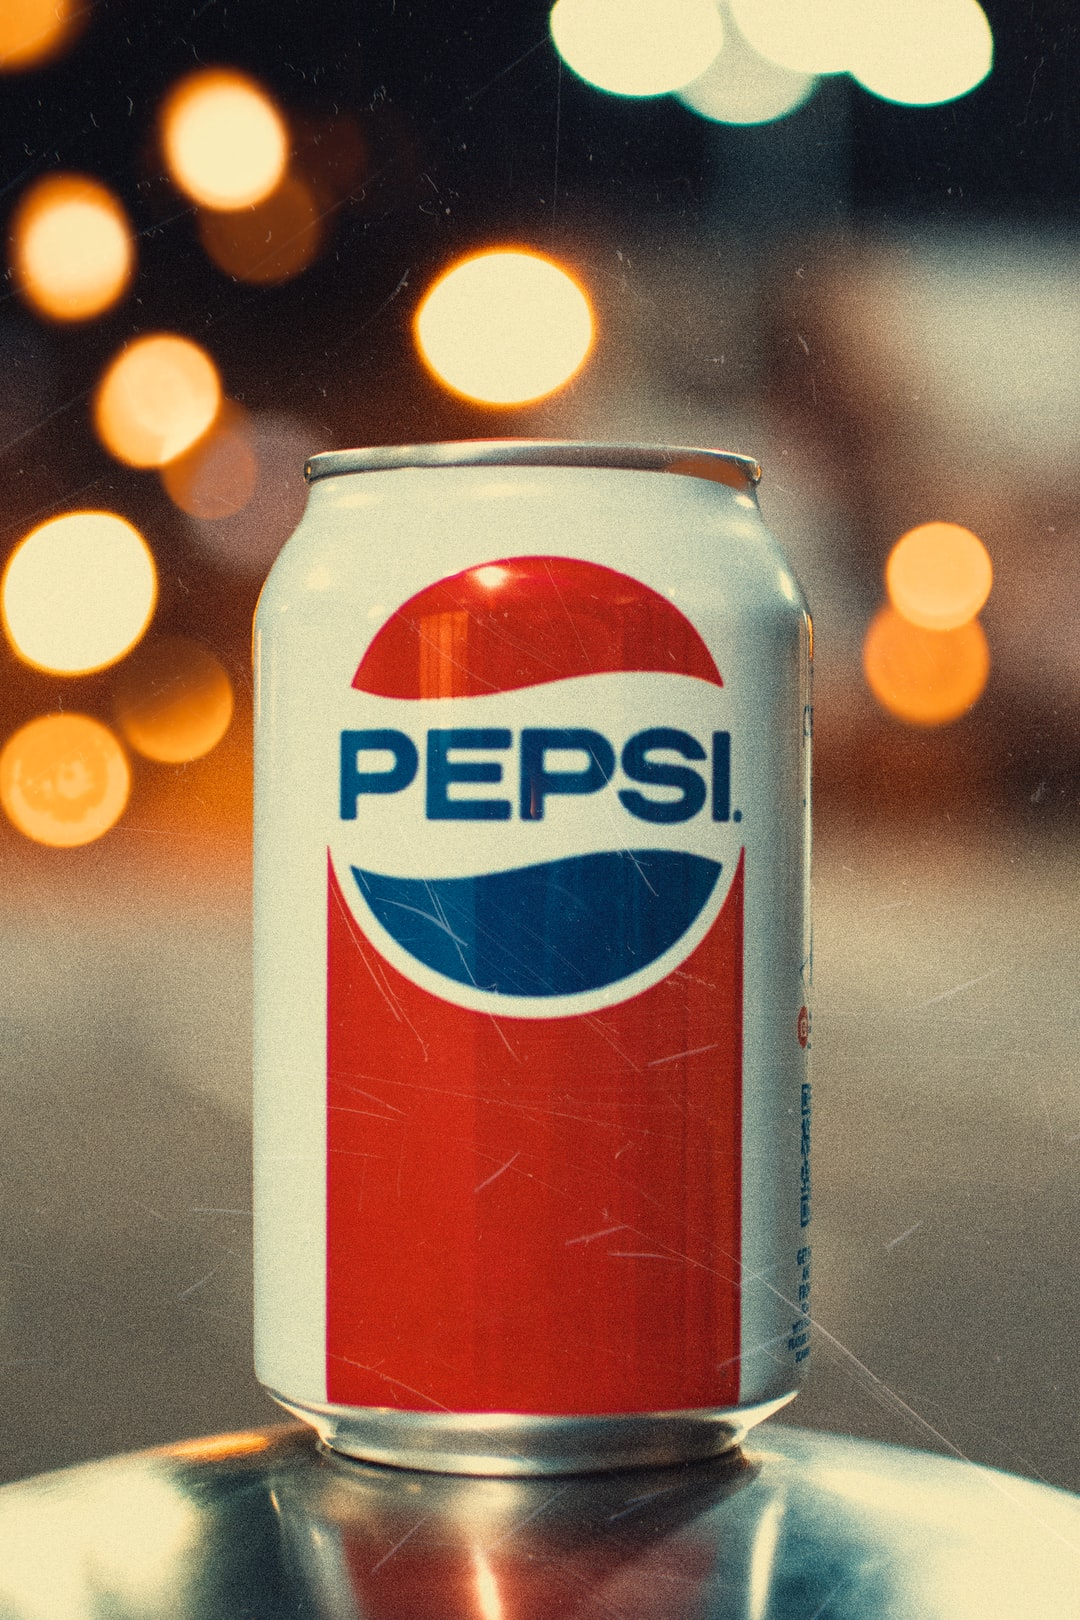 Go To Homepage >> Pepsi can on gray surface photo – Free Retro Image on Unsplash